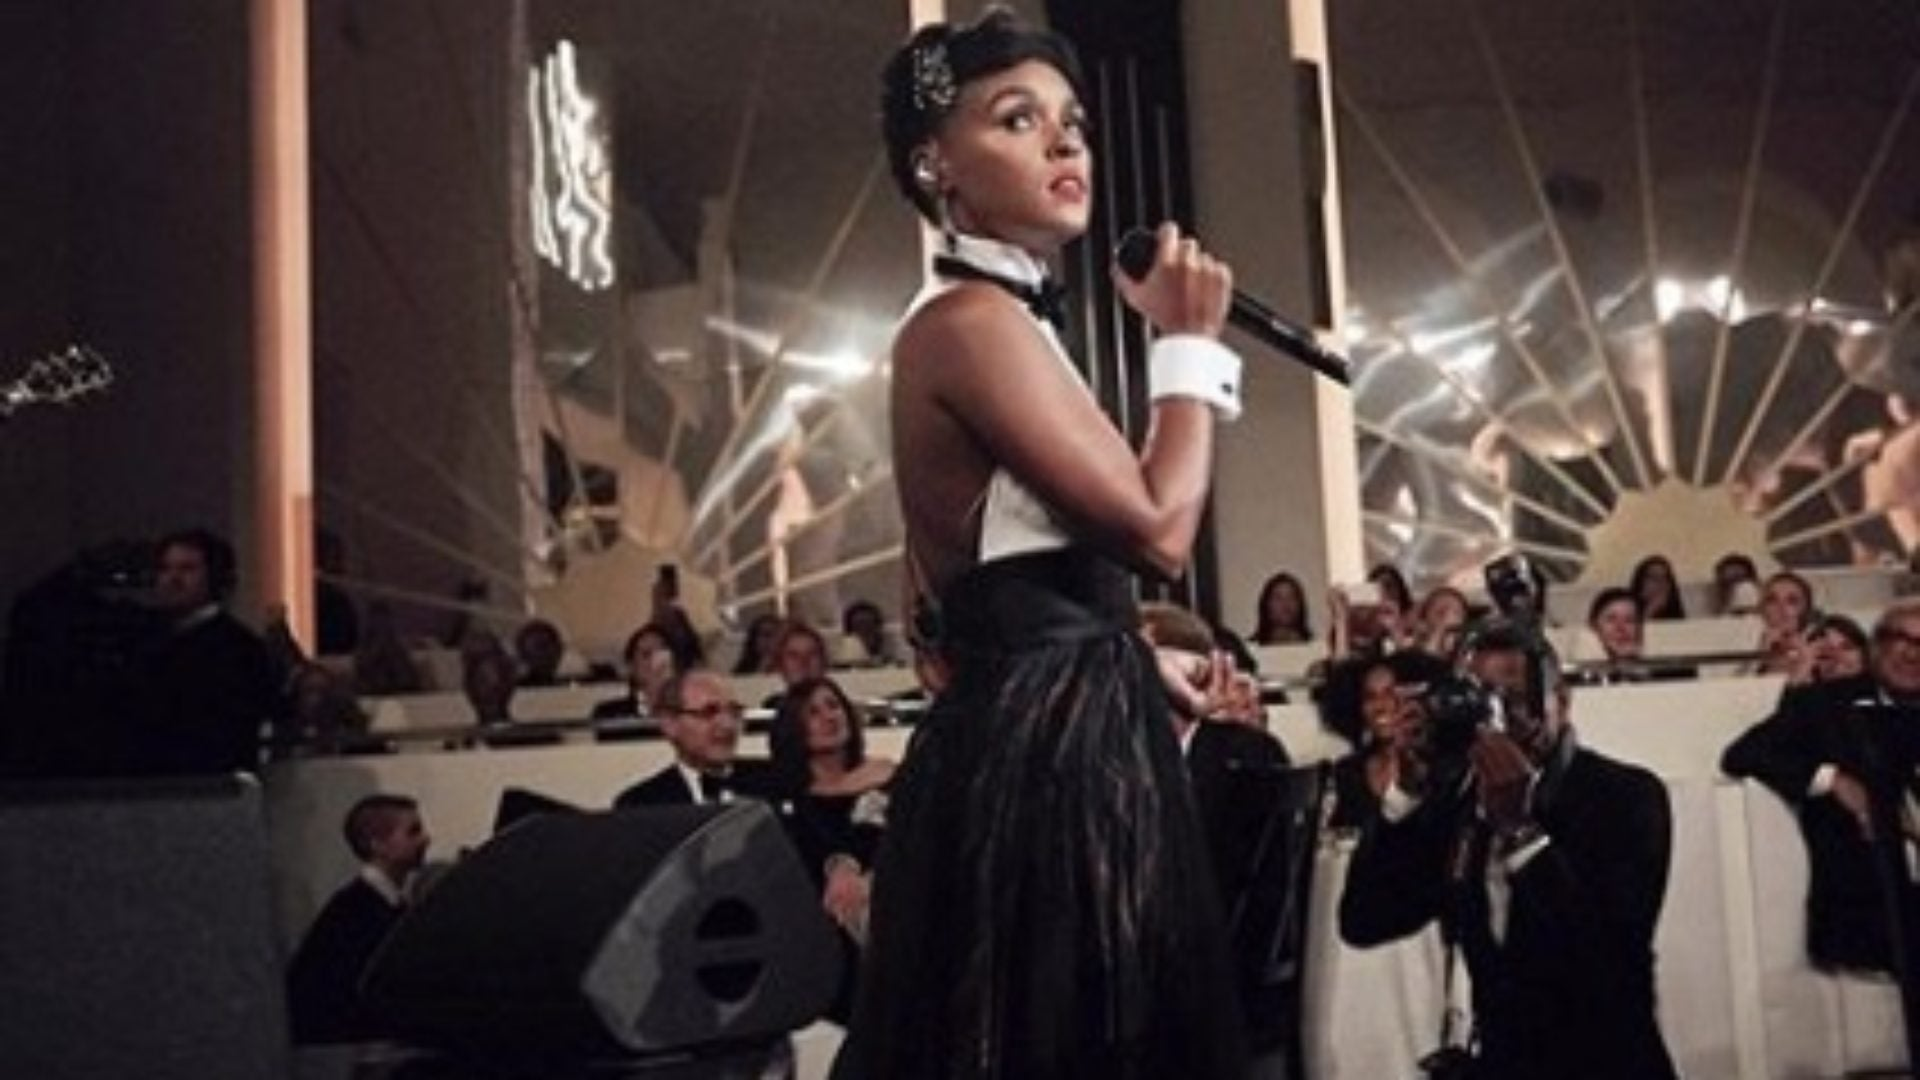 NYFW: Janelle Monáe's Jazz Performance At The Ralph Lauren Show Was A Definite Fashion Week Win!